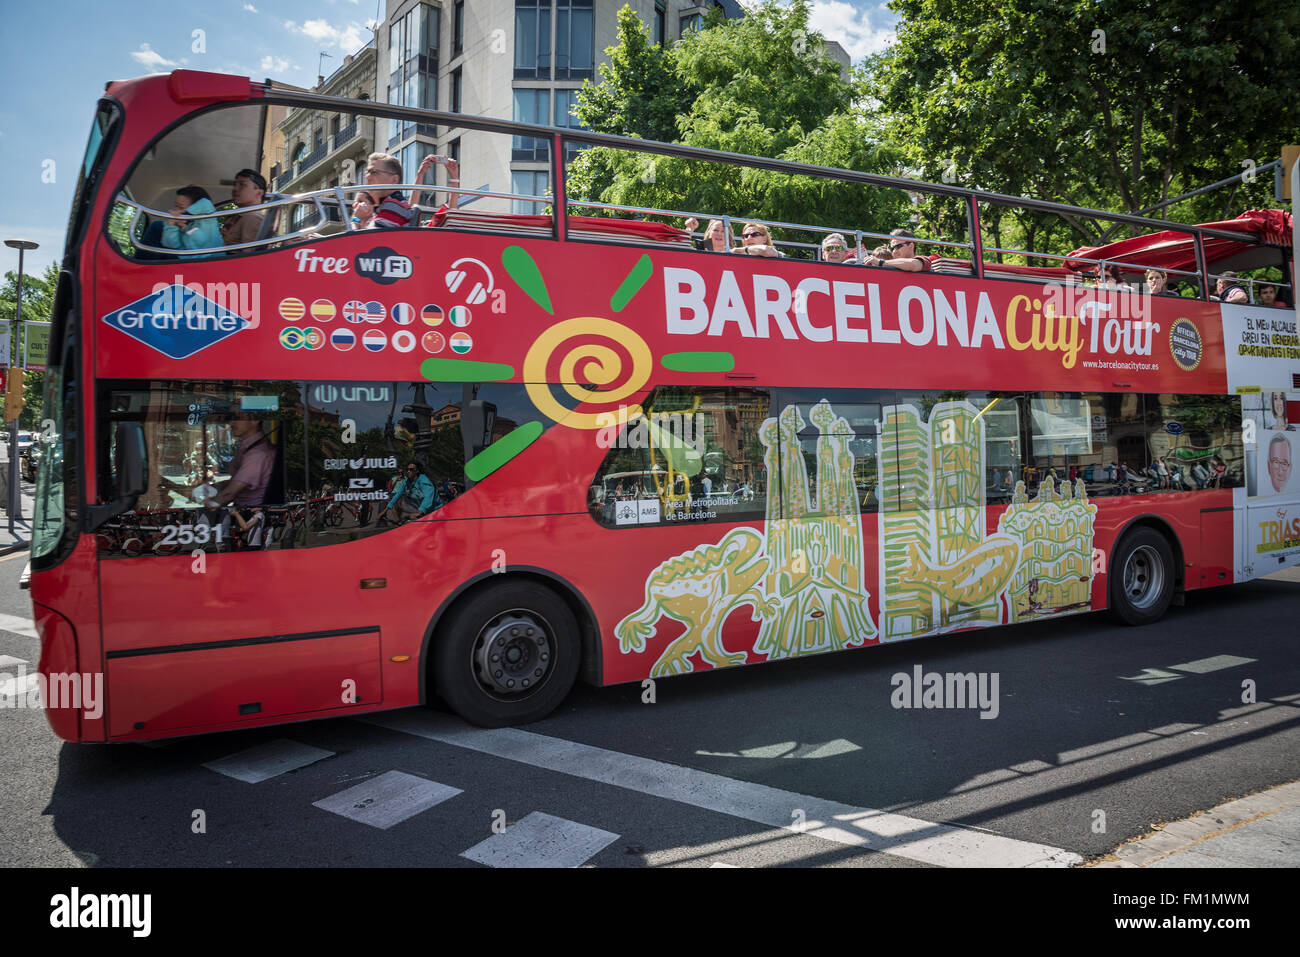 City Tour bus in Barcelona, Spain - Stock Image